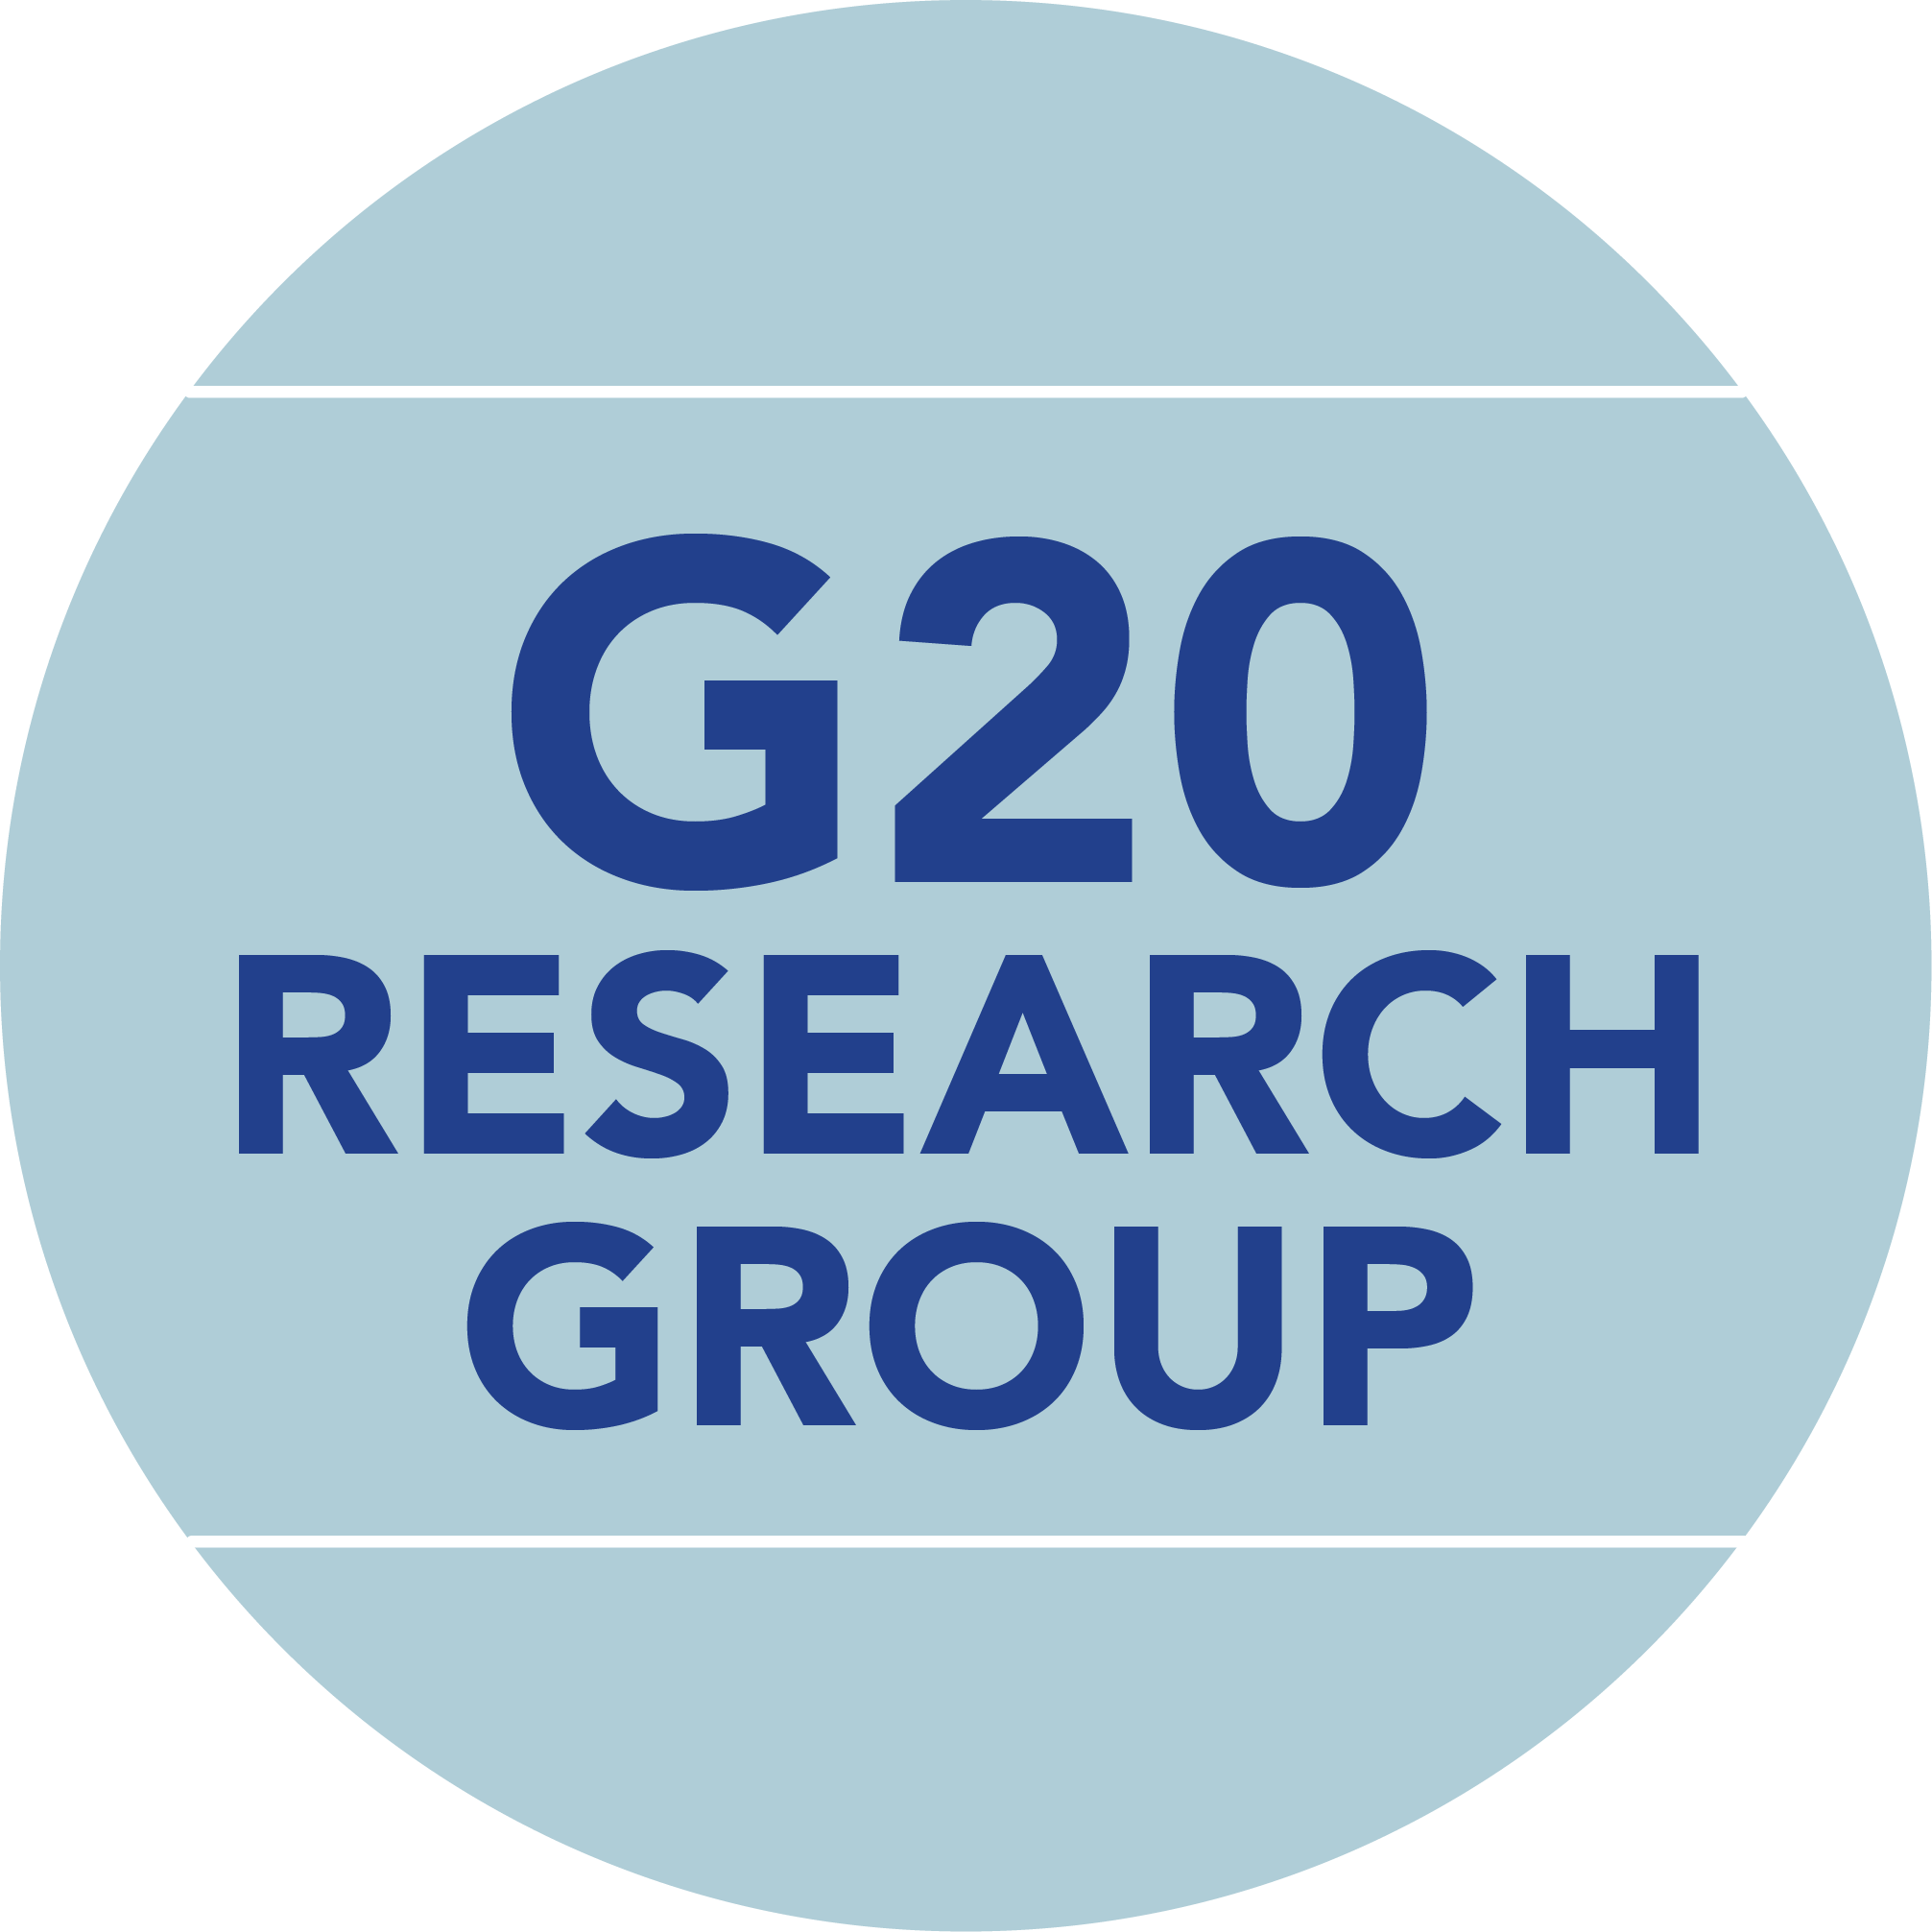 G20 Research Group